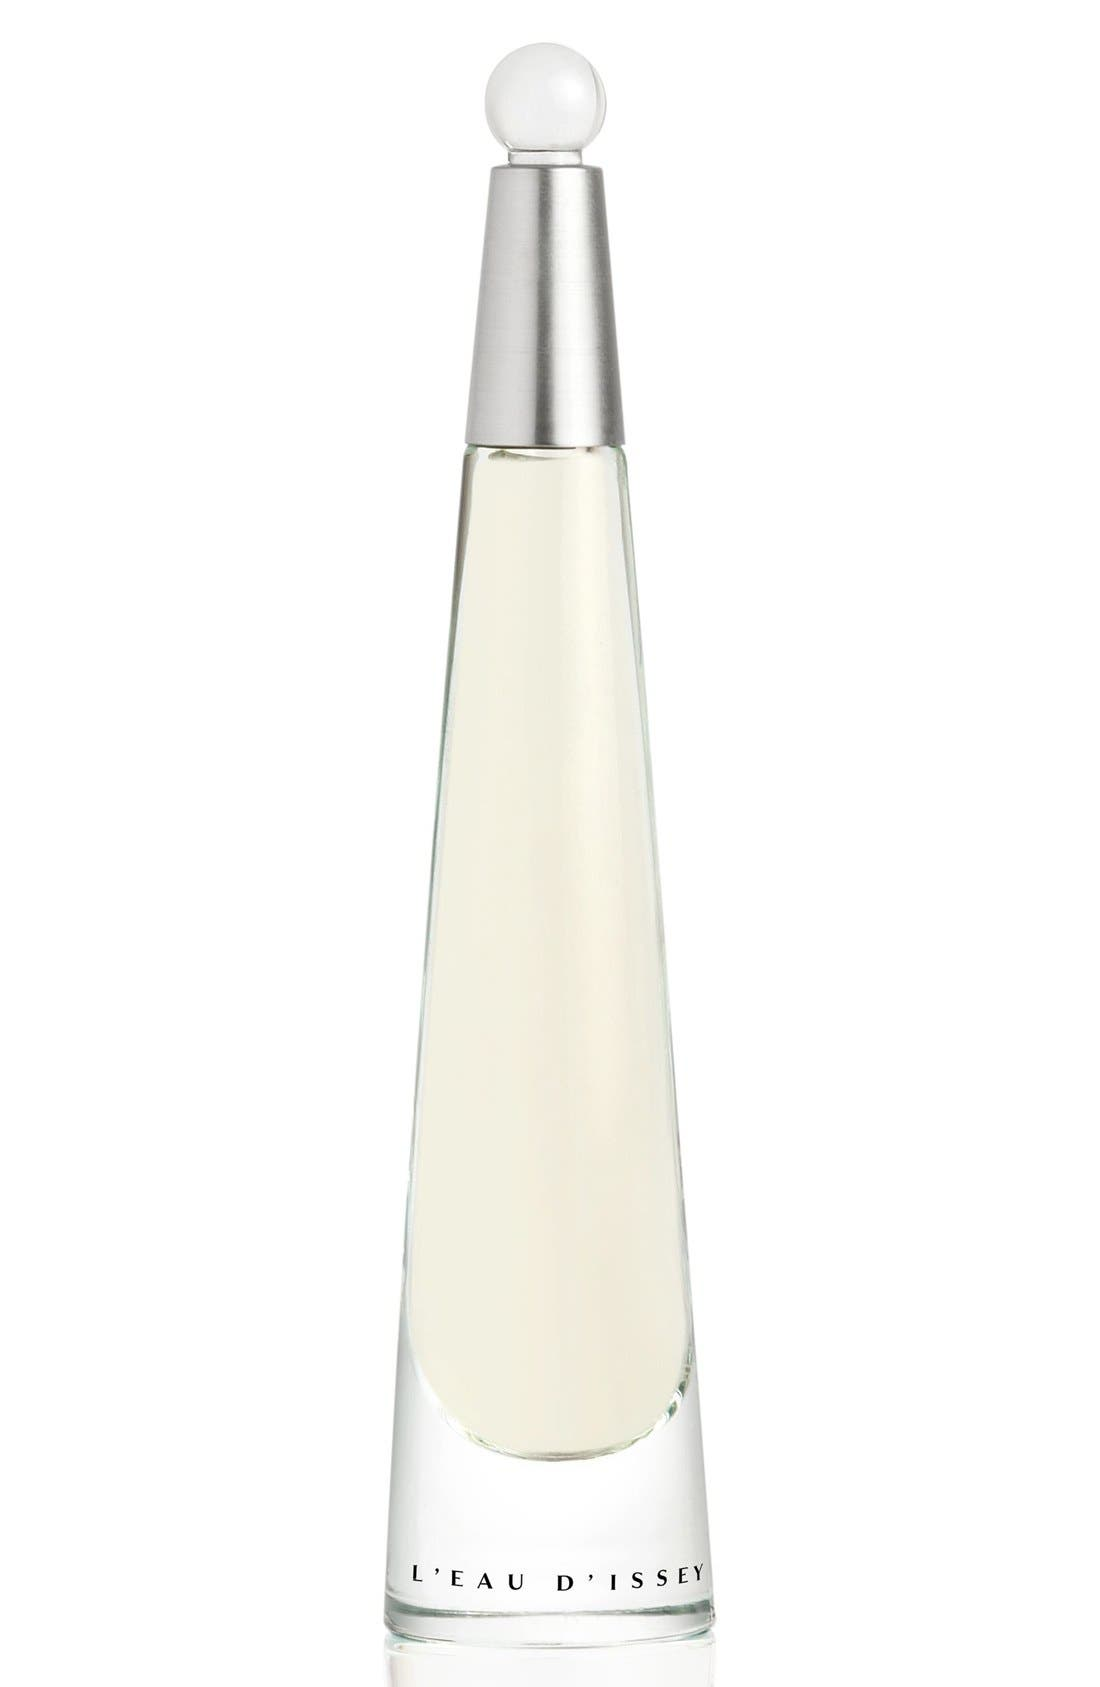 Issey Miyake 'L'Eau d'Issey' Parfum Extract